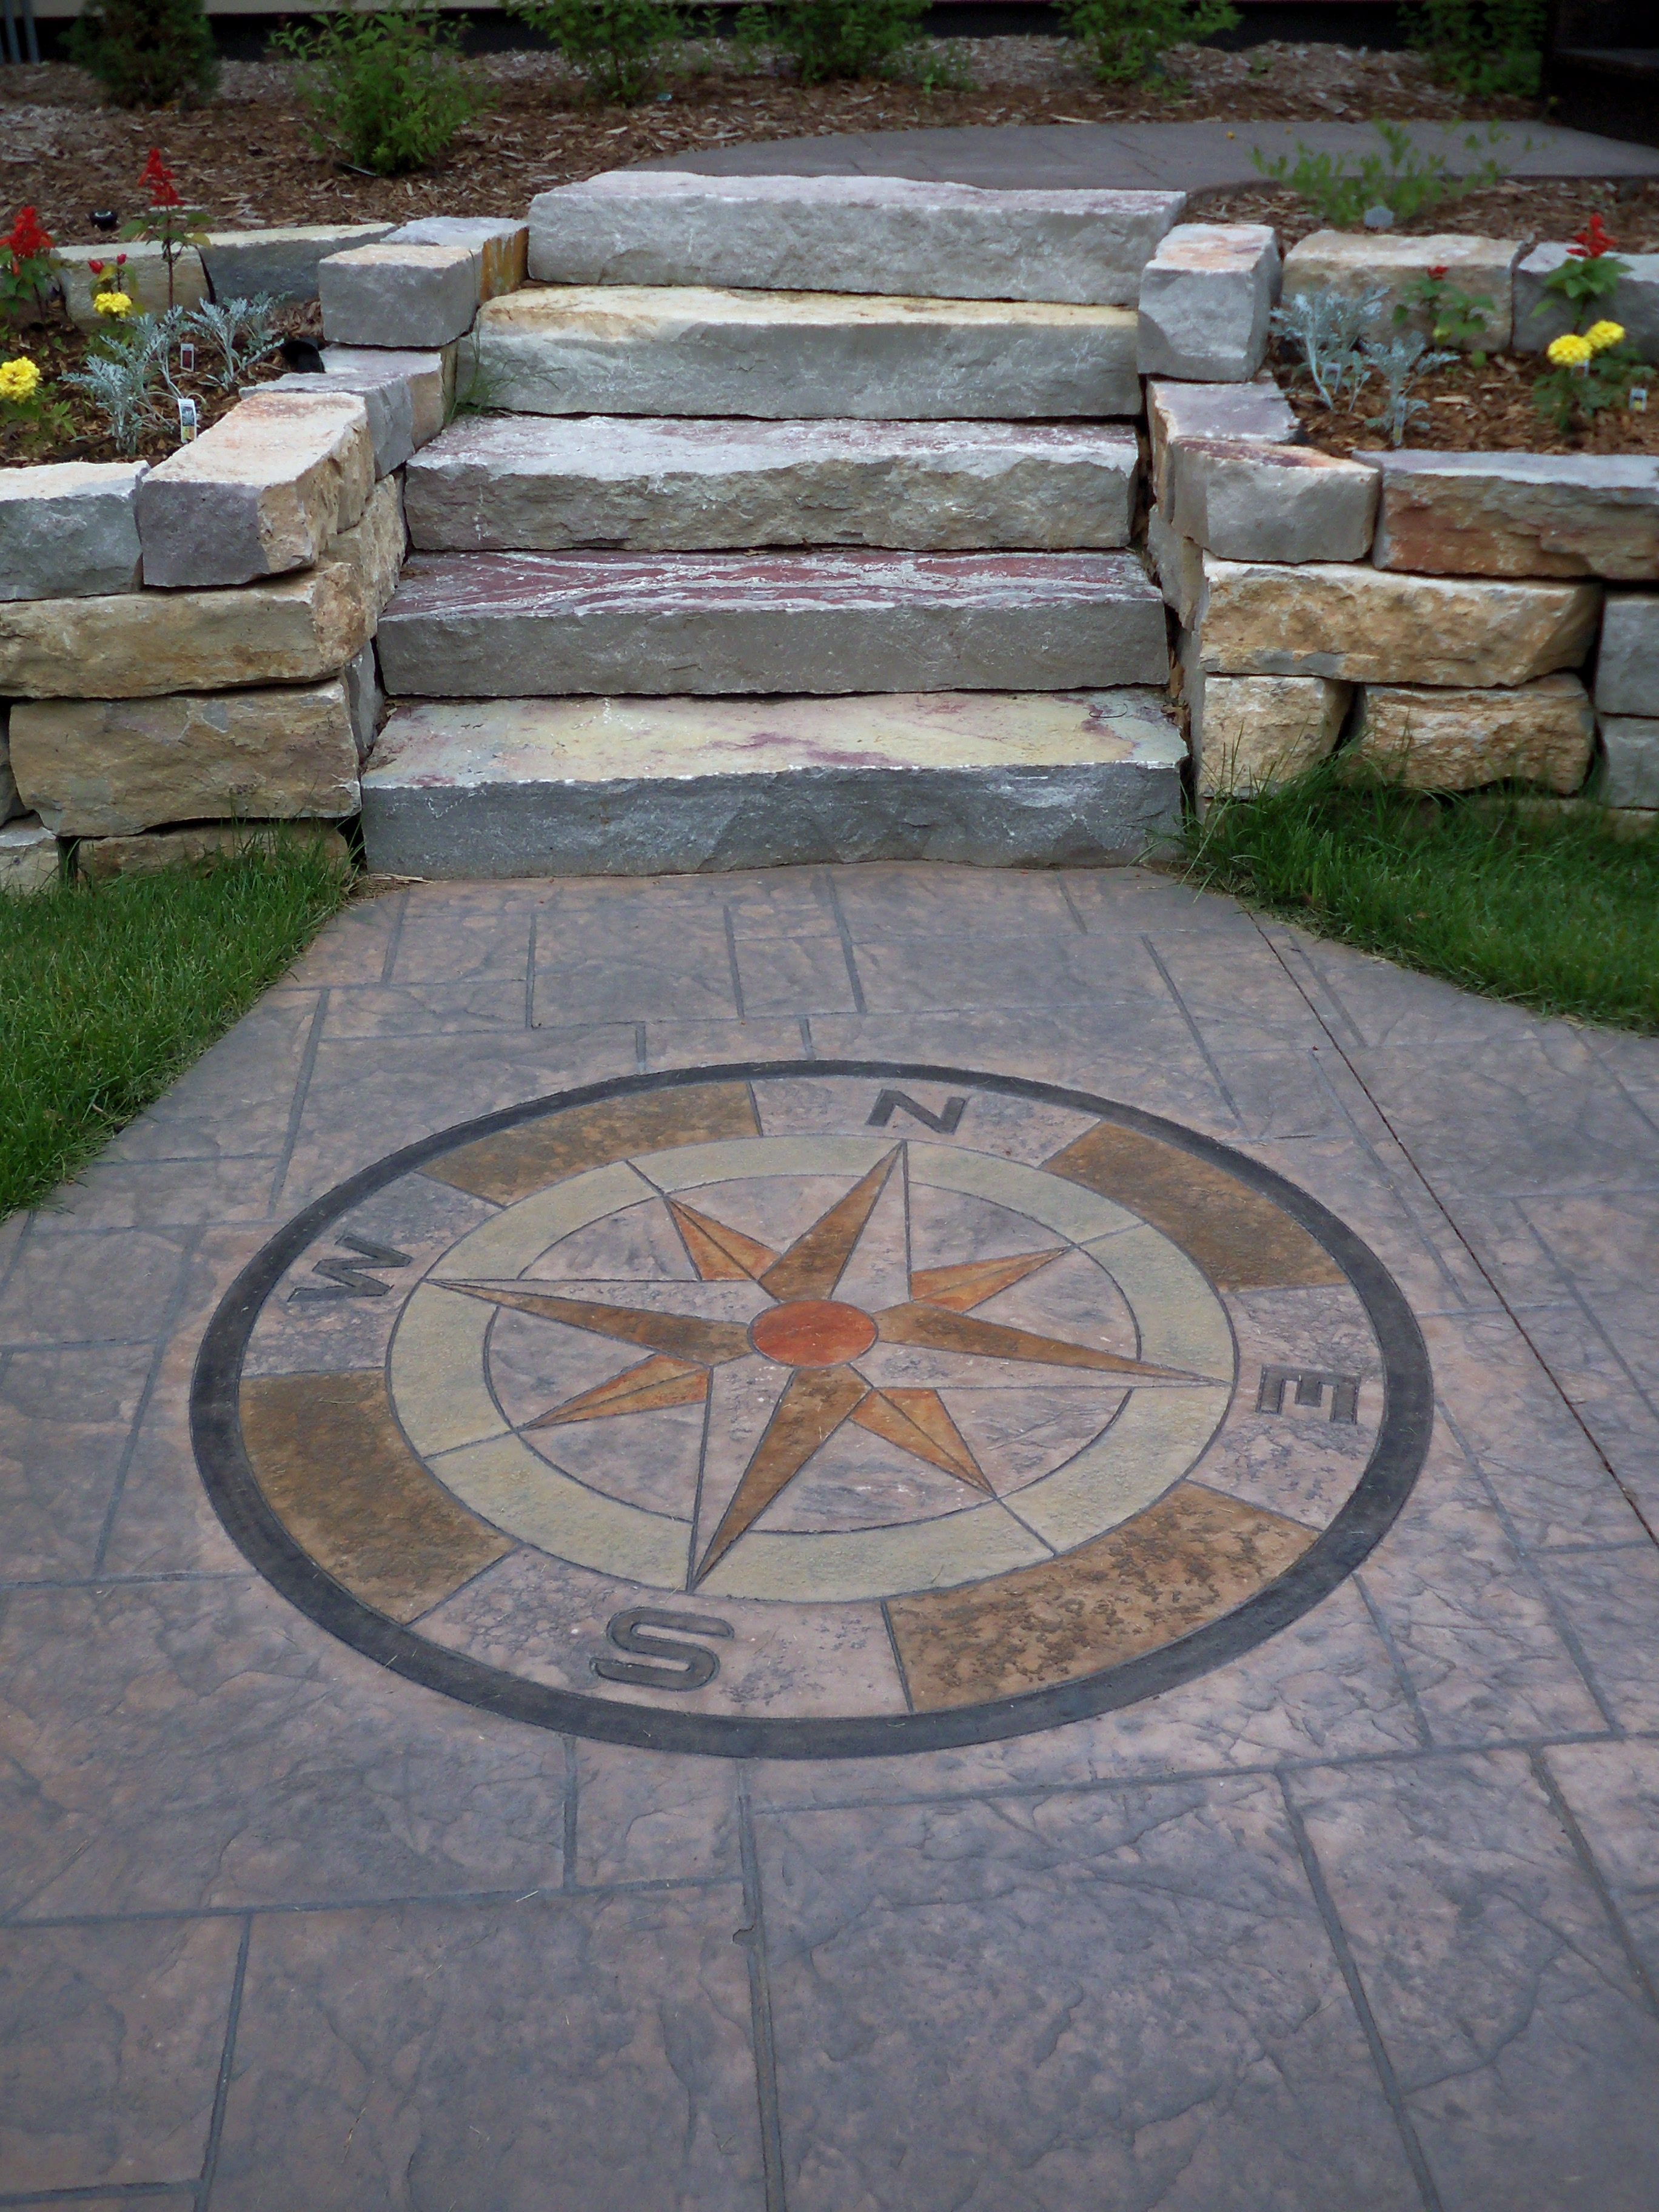 Compass Design A Natural And Practical Garden Decoration